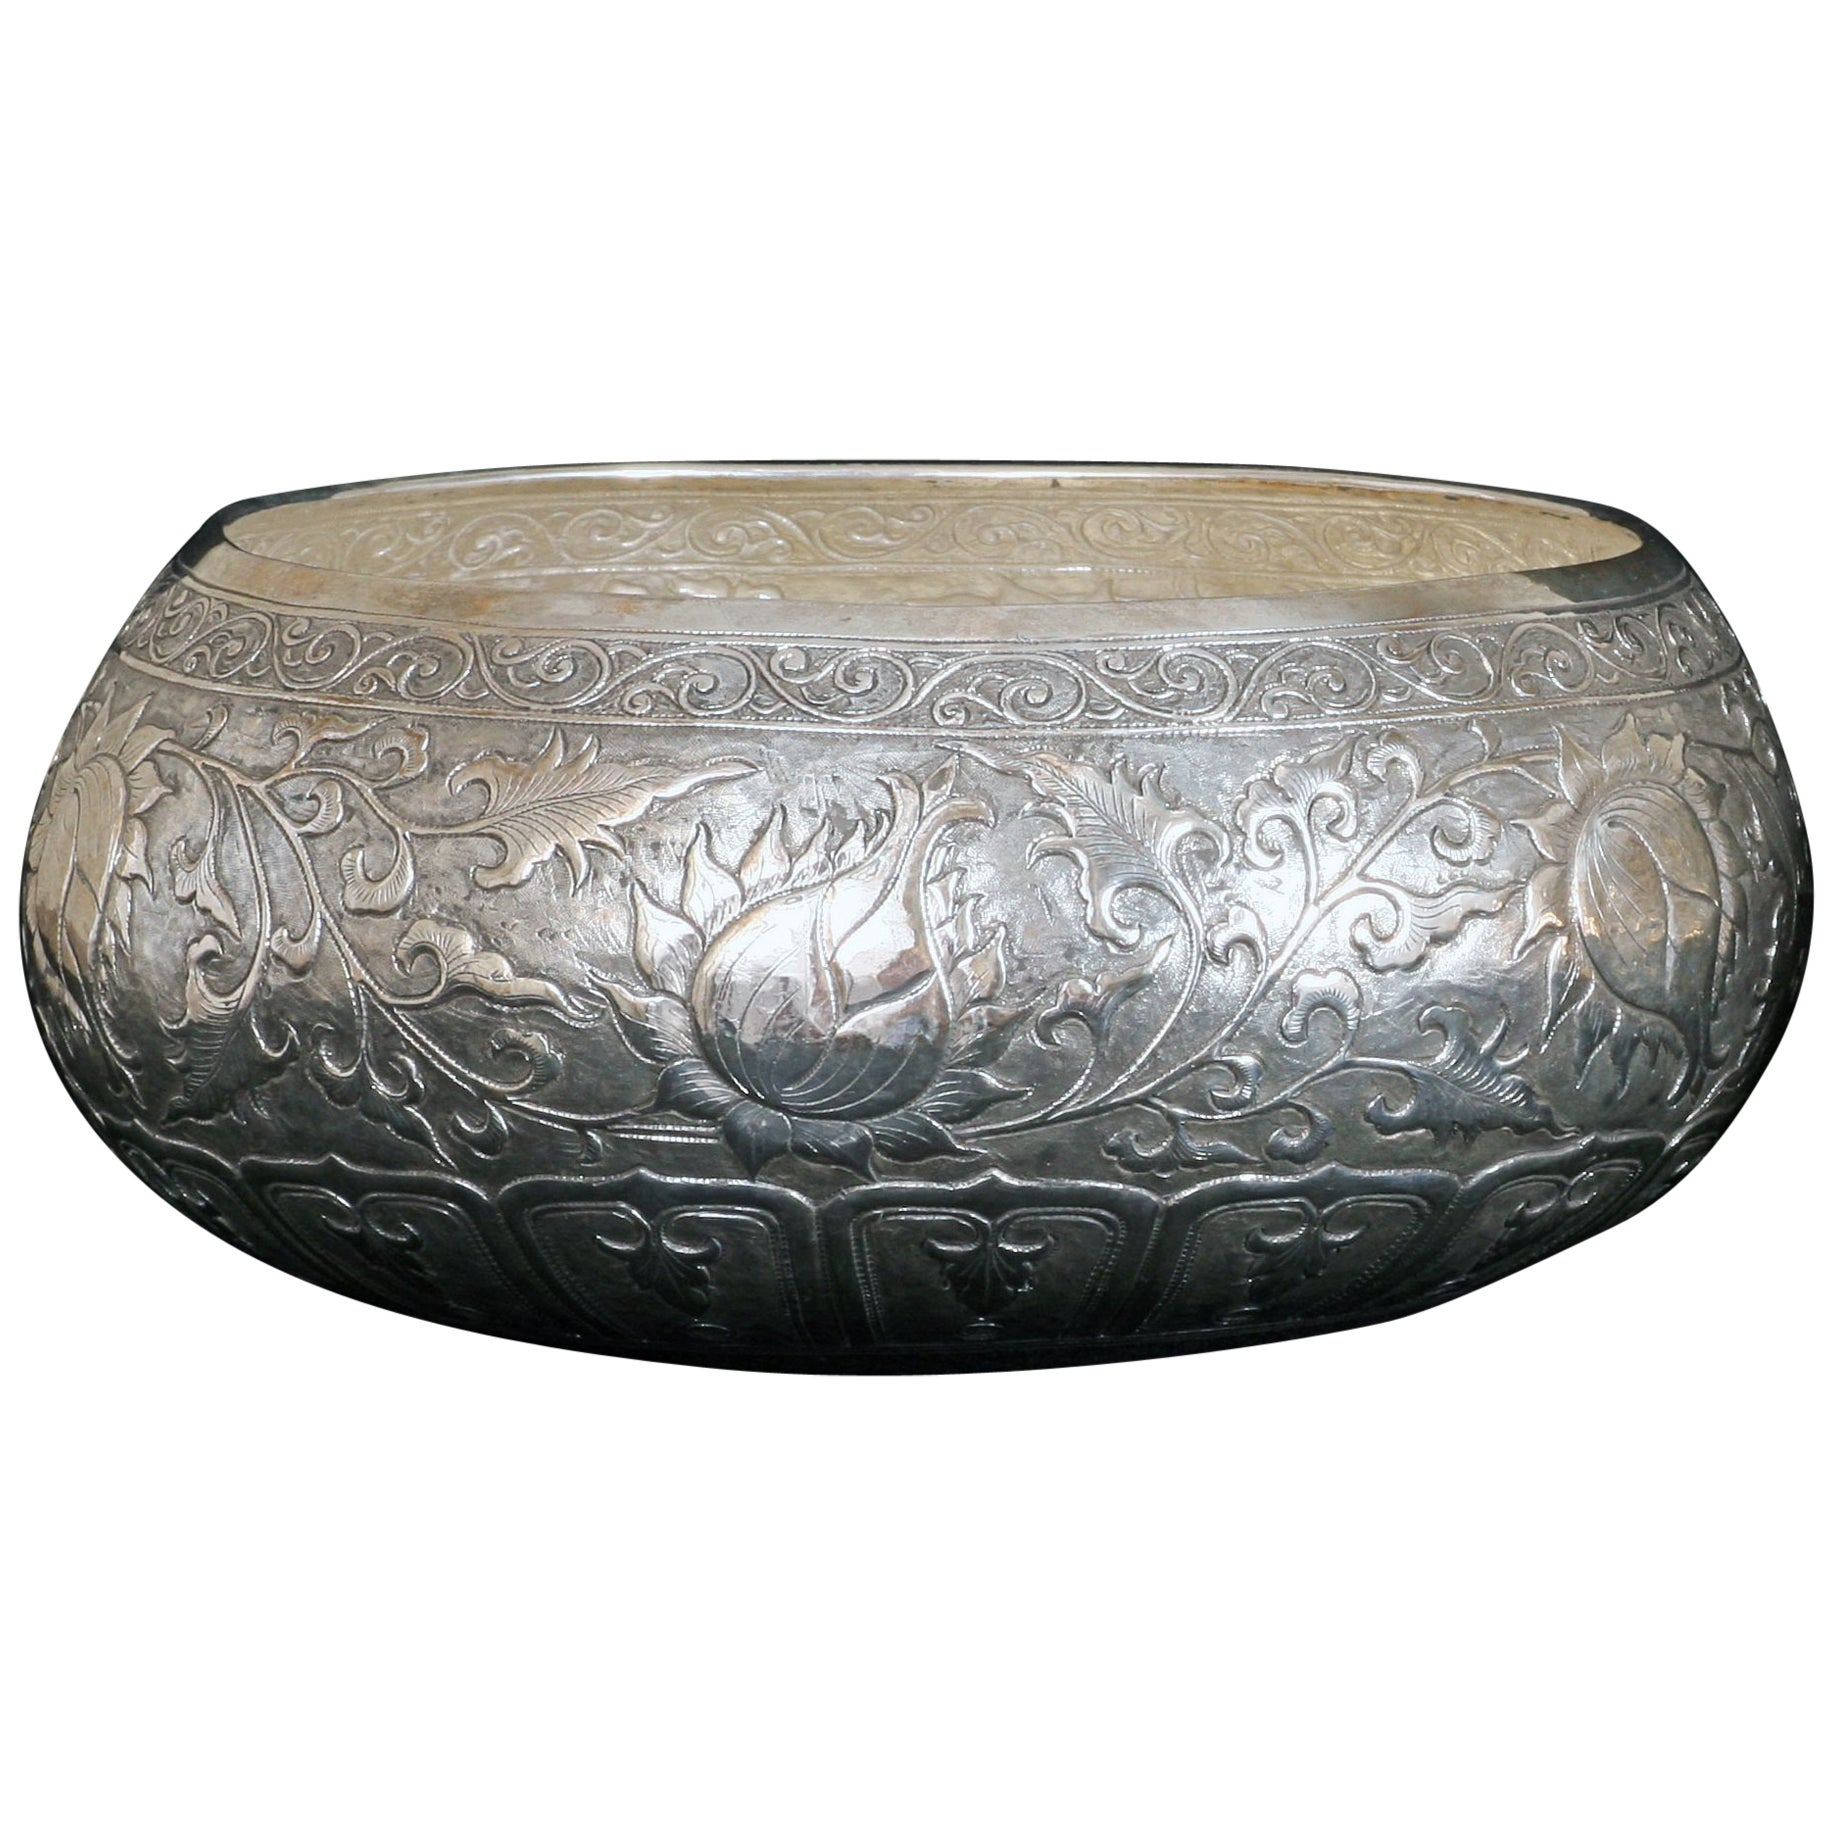 Contemporary Hand-Worked Solid Silver Bowl, Chinese Floral Motif, Centerpiece